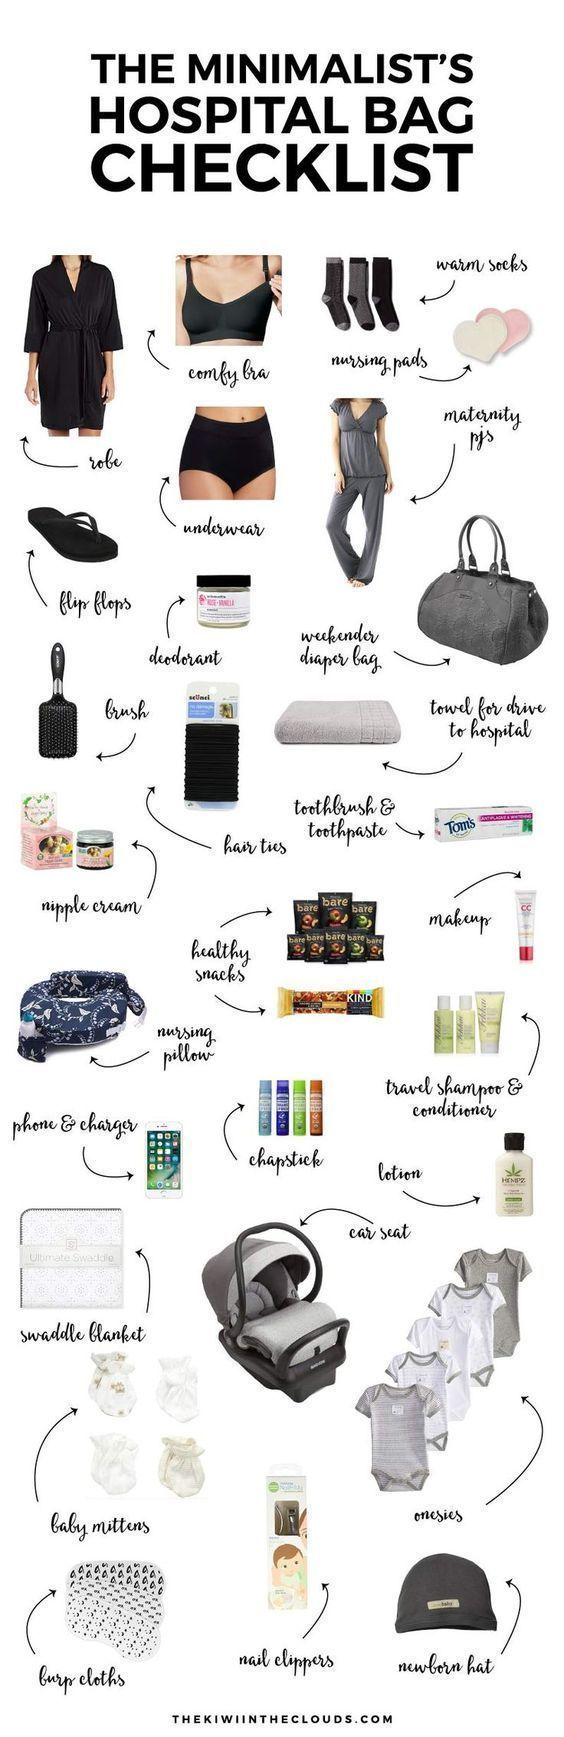 Hospital Bag Checklist | Newborn Advice | Pregnancy Tips #pregnancyadvice